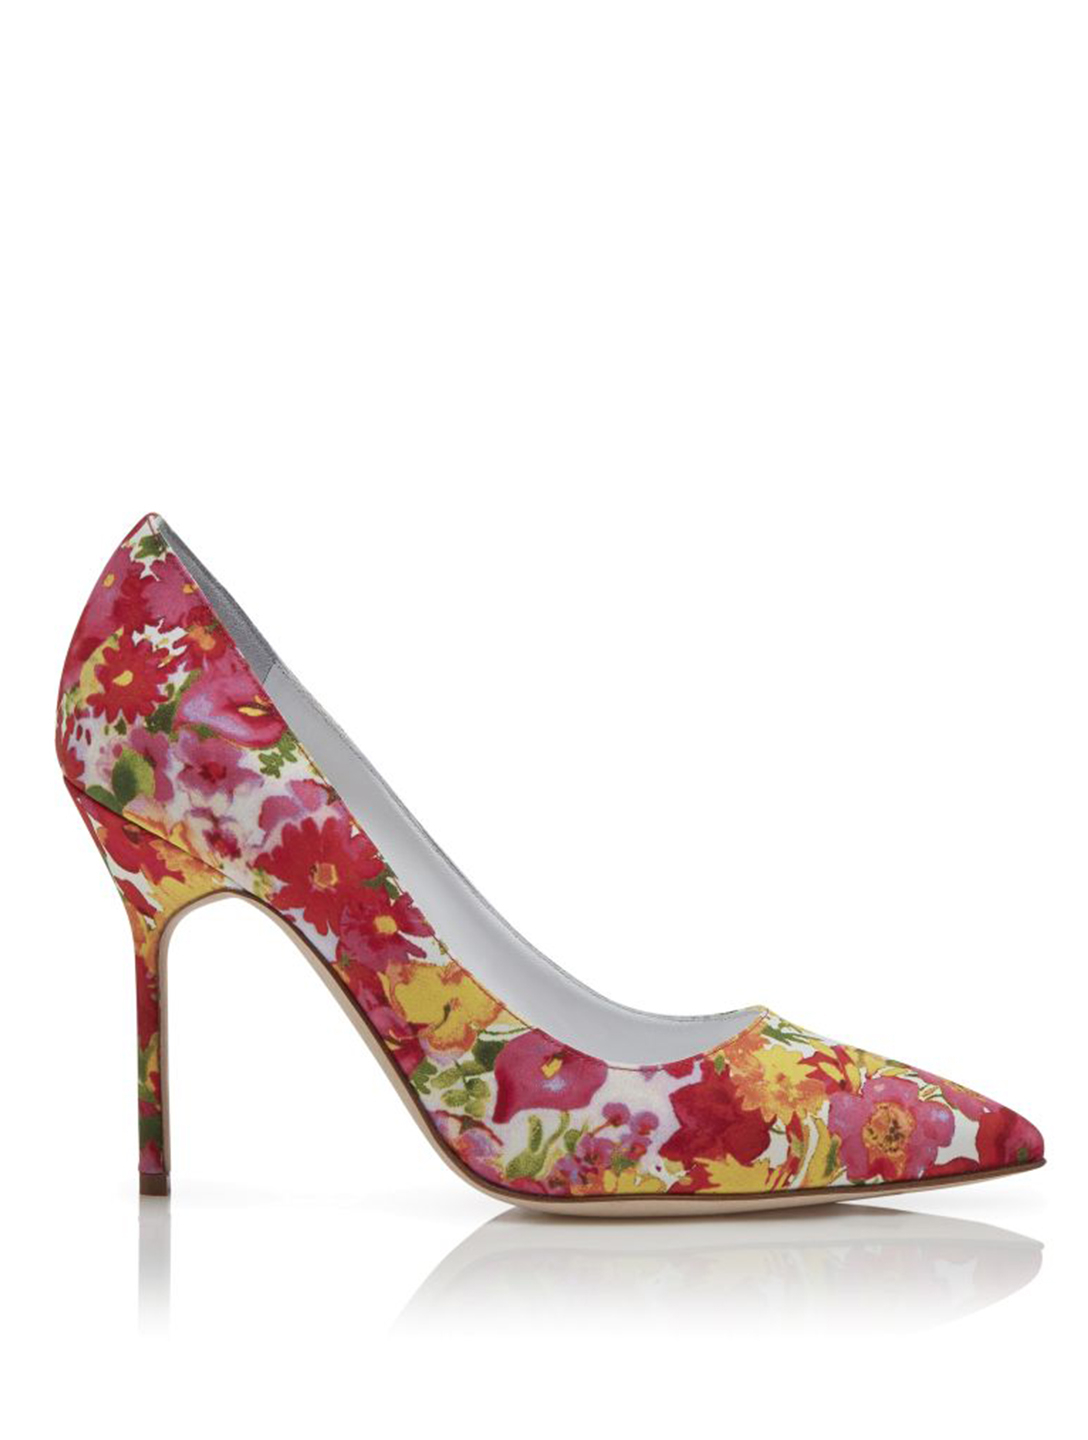 MANOLO BLAHNIK BB 105 Fabric Pumps In Floral Print Women's Pink